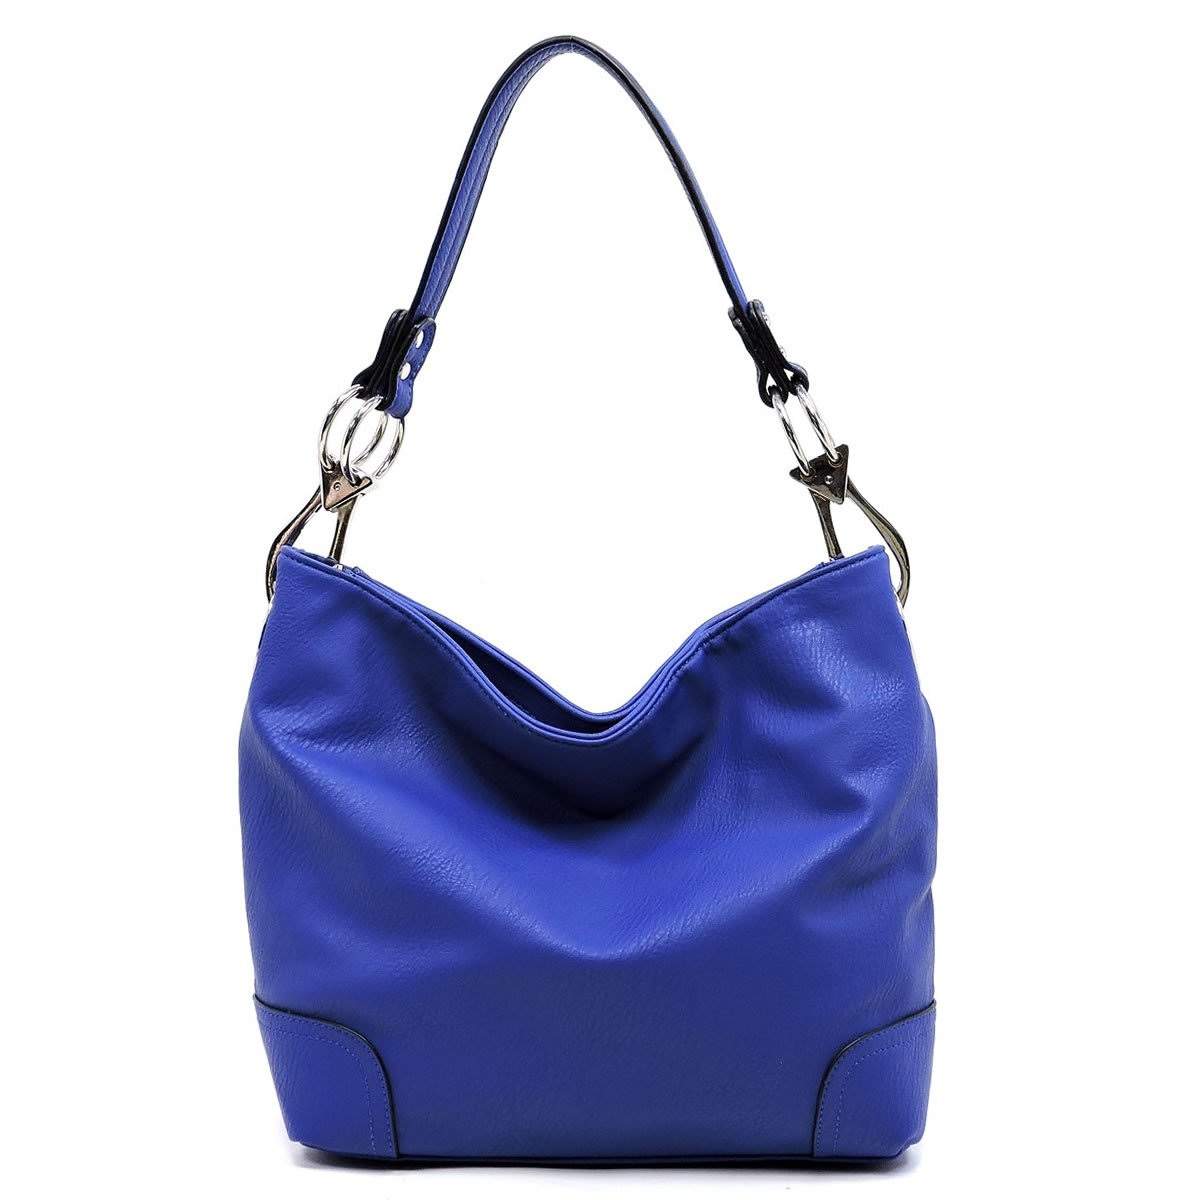 Elphis Fashion Classic Shoulder Bag Hobo Bucket Handbag Purse (79-Royal Blue)